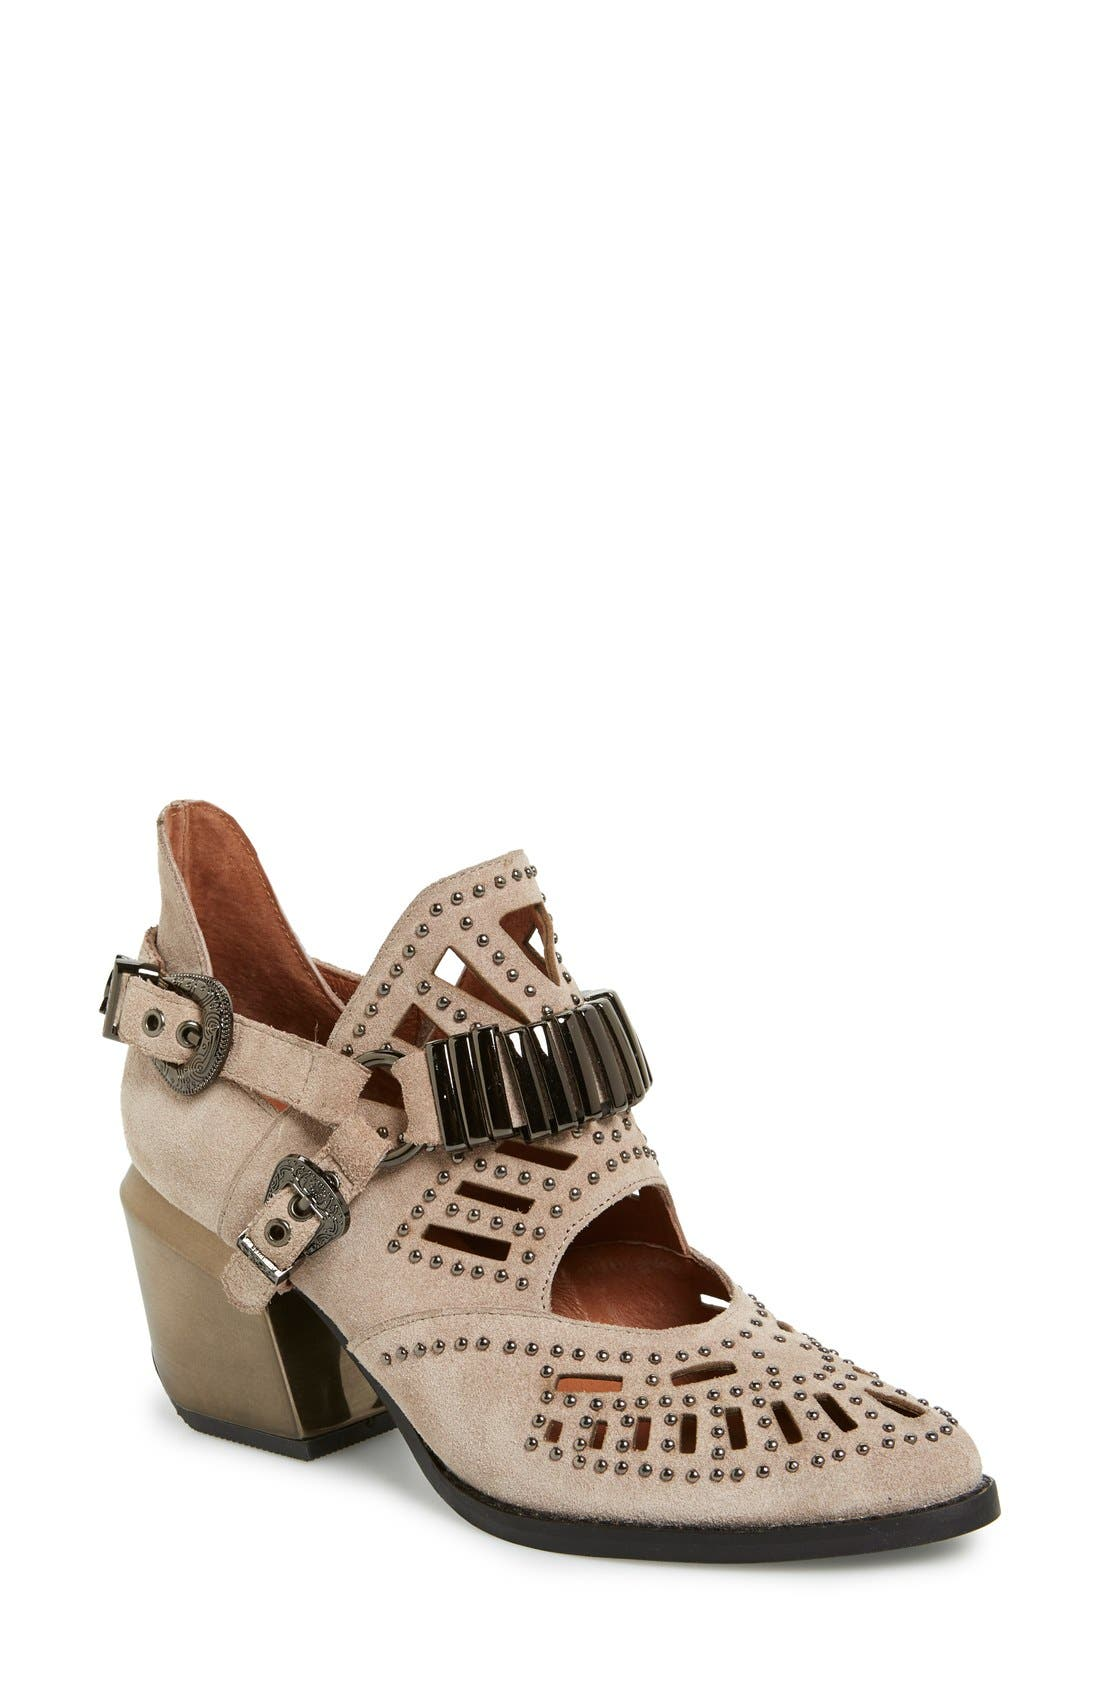 Main Image - Jeffrey Campbell 'Calhoun' Ankle Boot (Women)